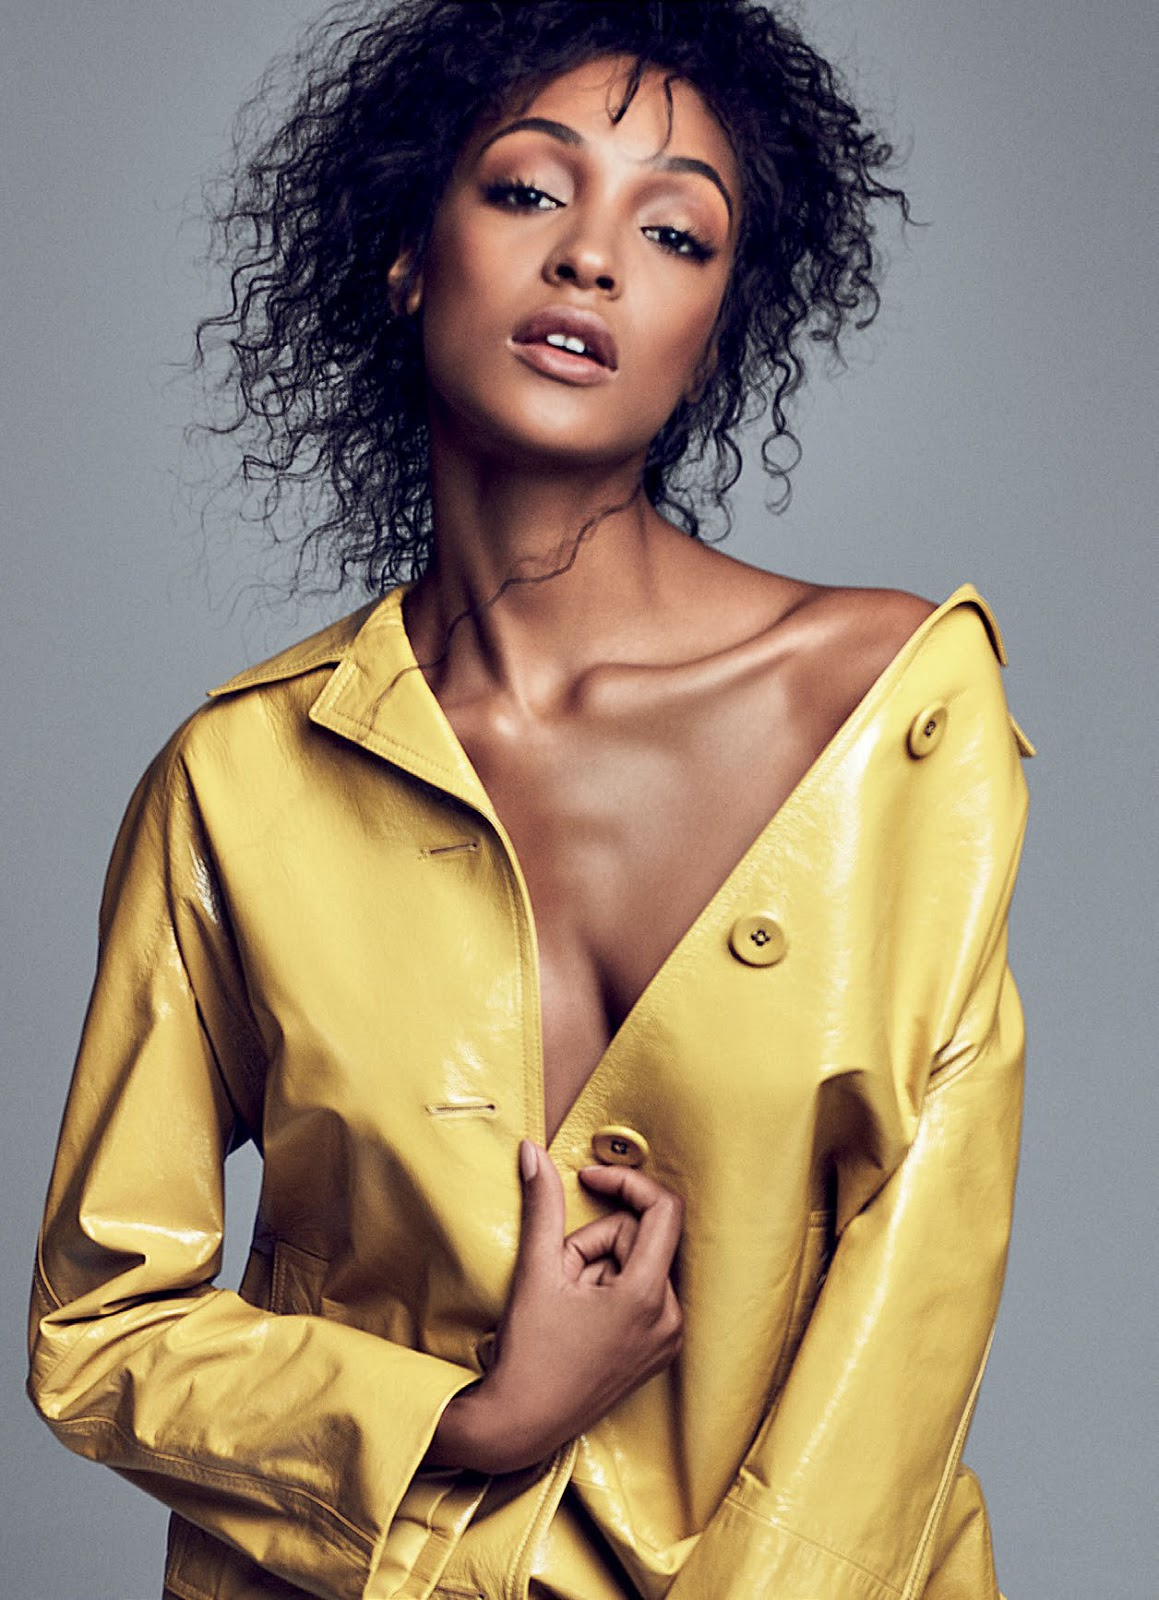 Smile: Jourdan Dunn in Elle Brazil October 2016 by Mark ...